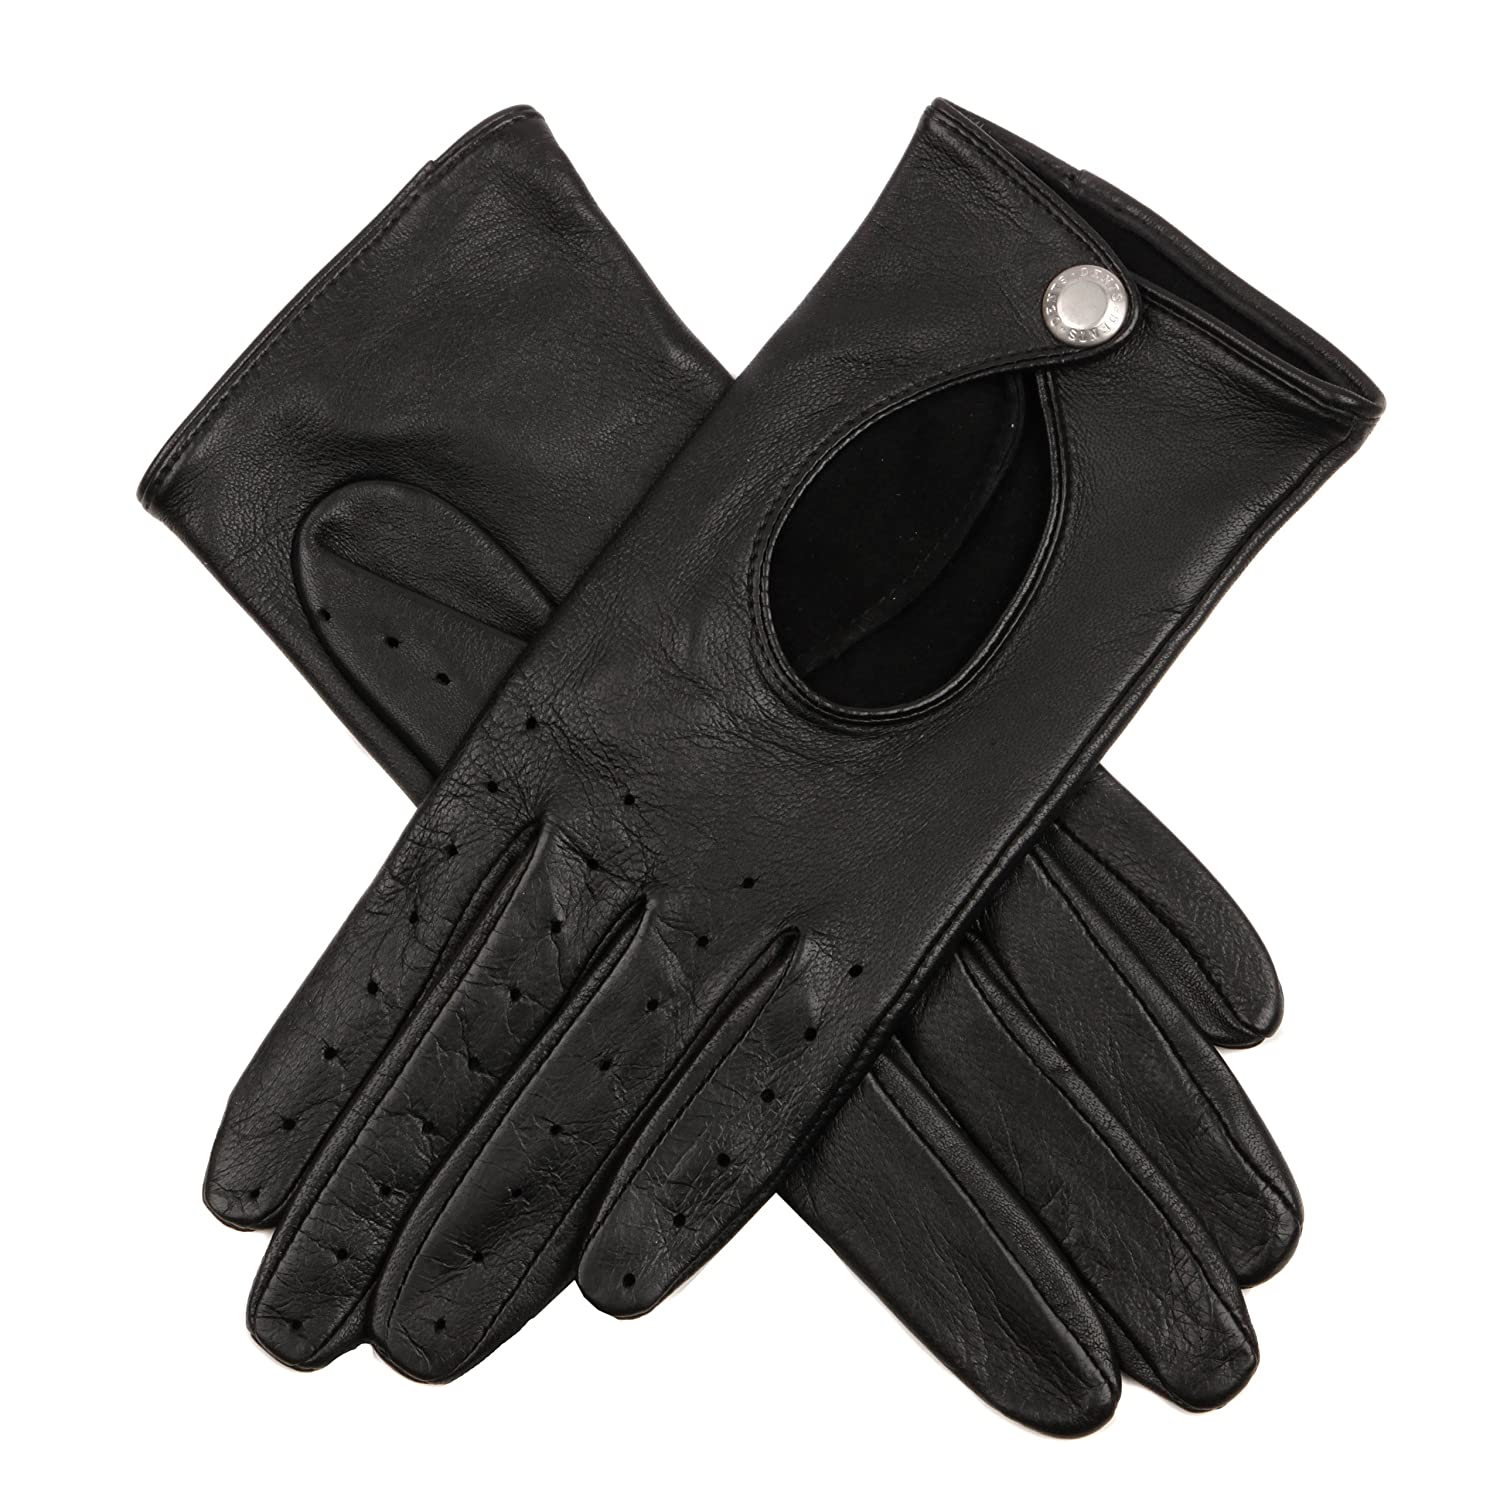 Ladies leather driving gloves australia - Dents Women S 7 3008 Gloves Red Berry Small Manufacturer Size 6 5 Amazon Co Uk Clothing